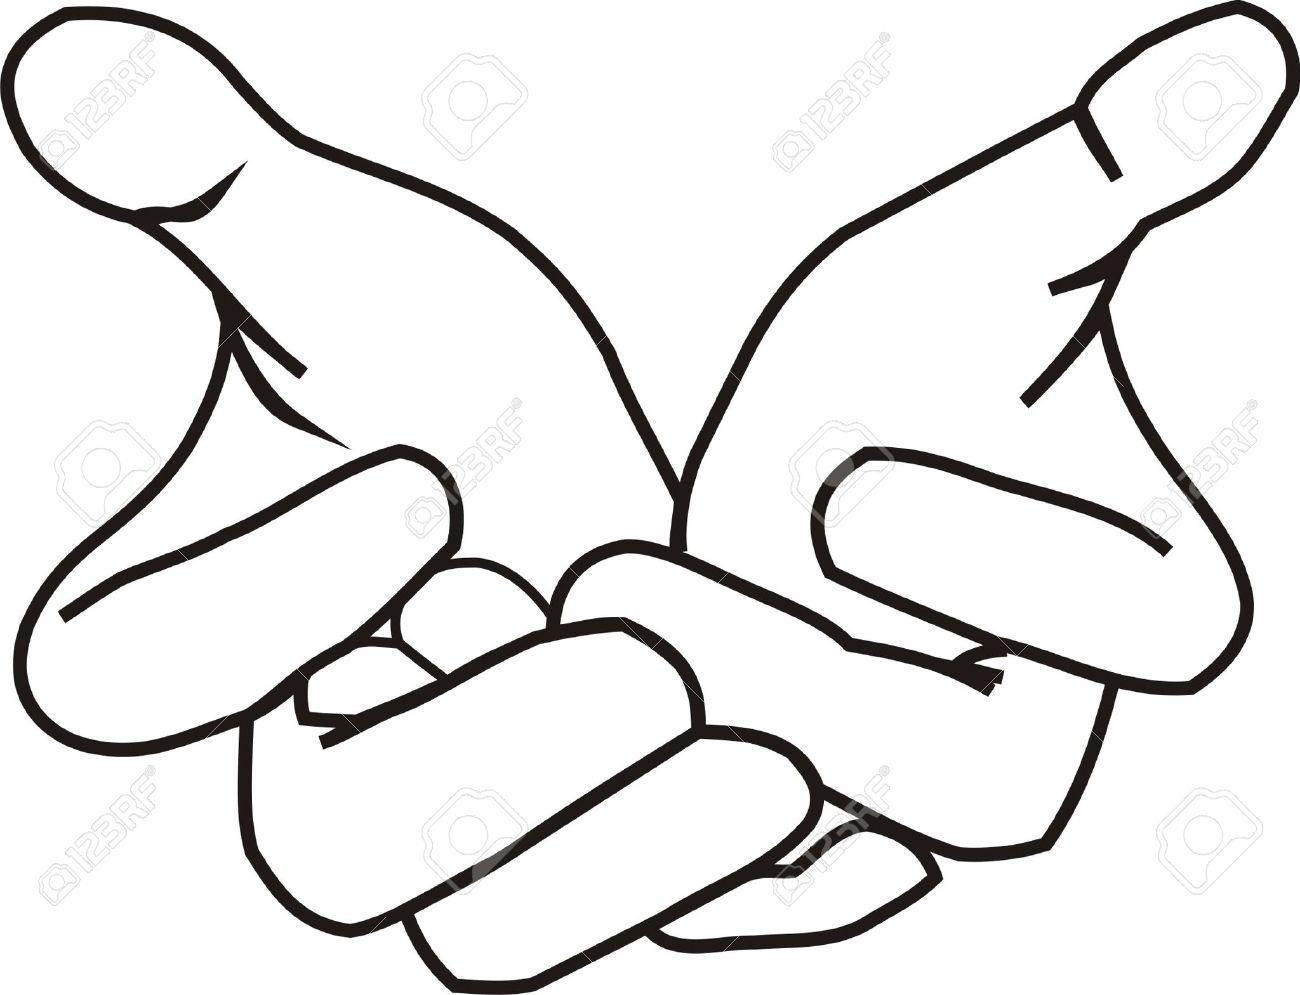 Giving Hands Clipart in 2019.